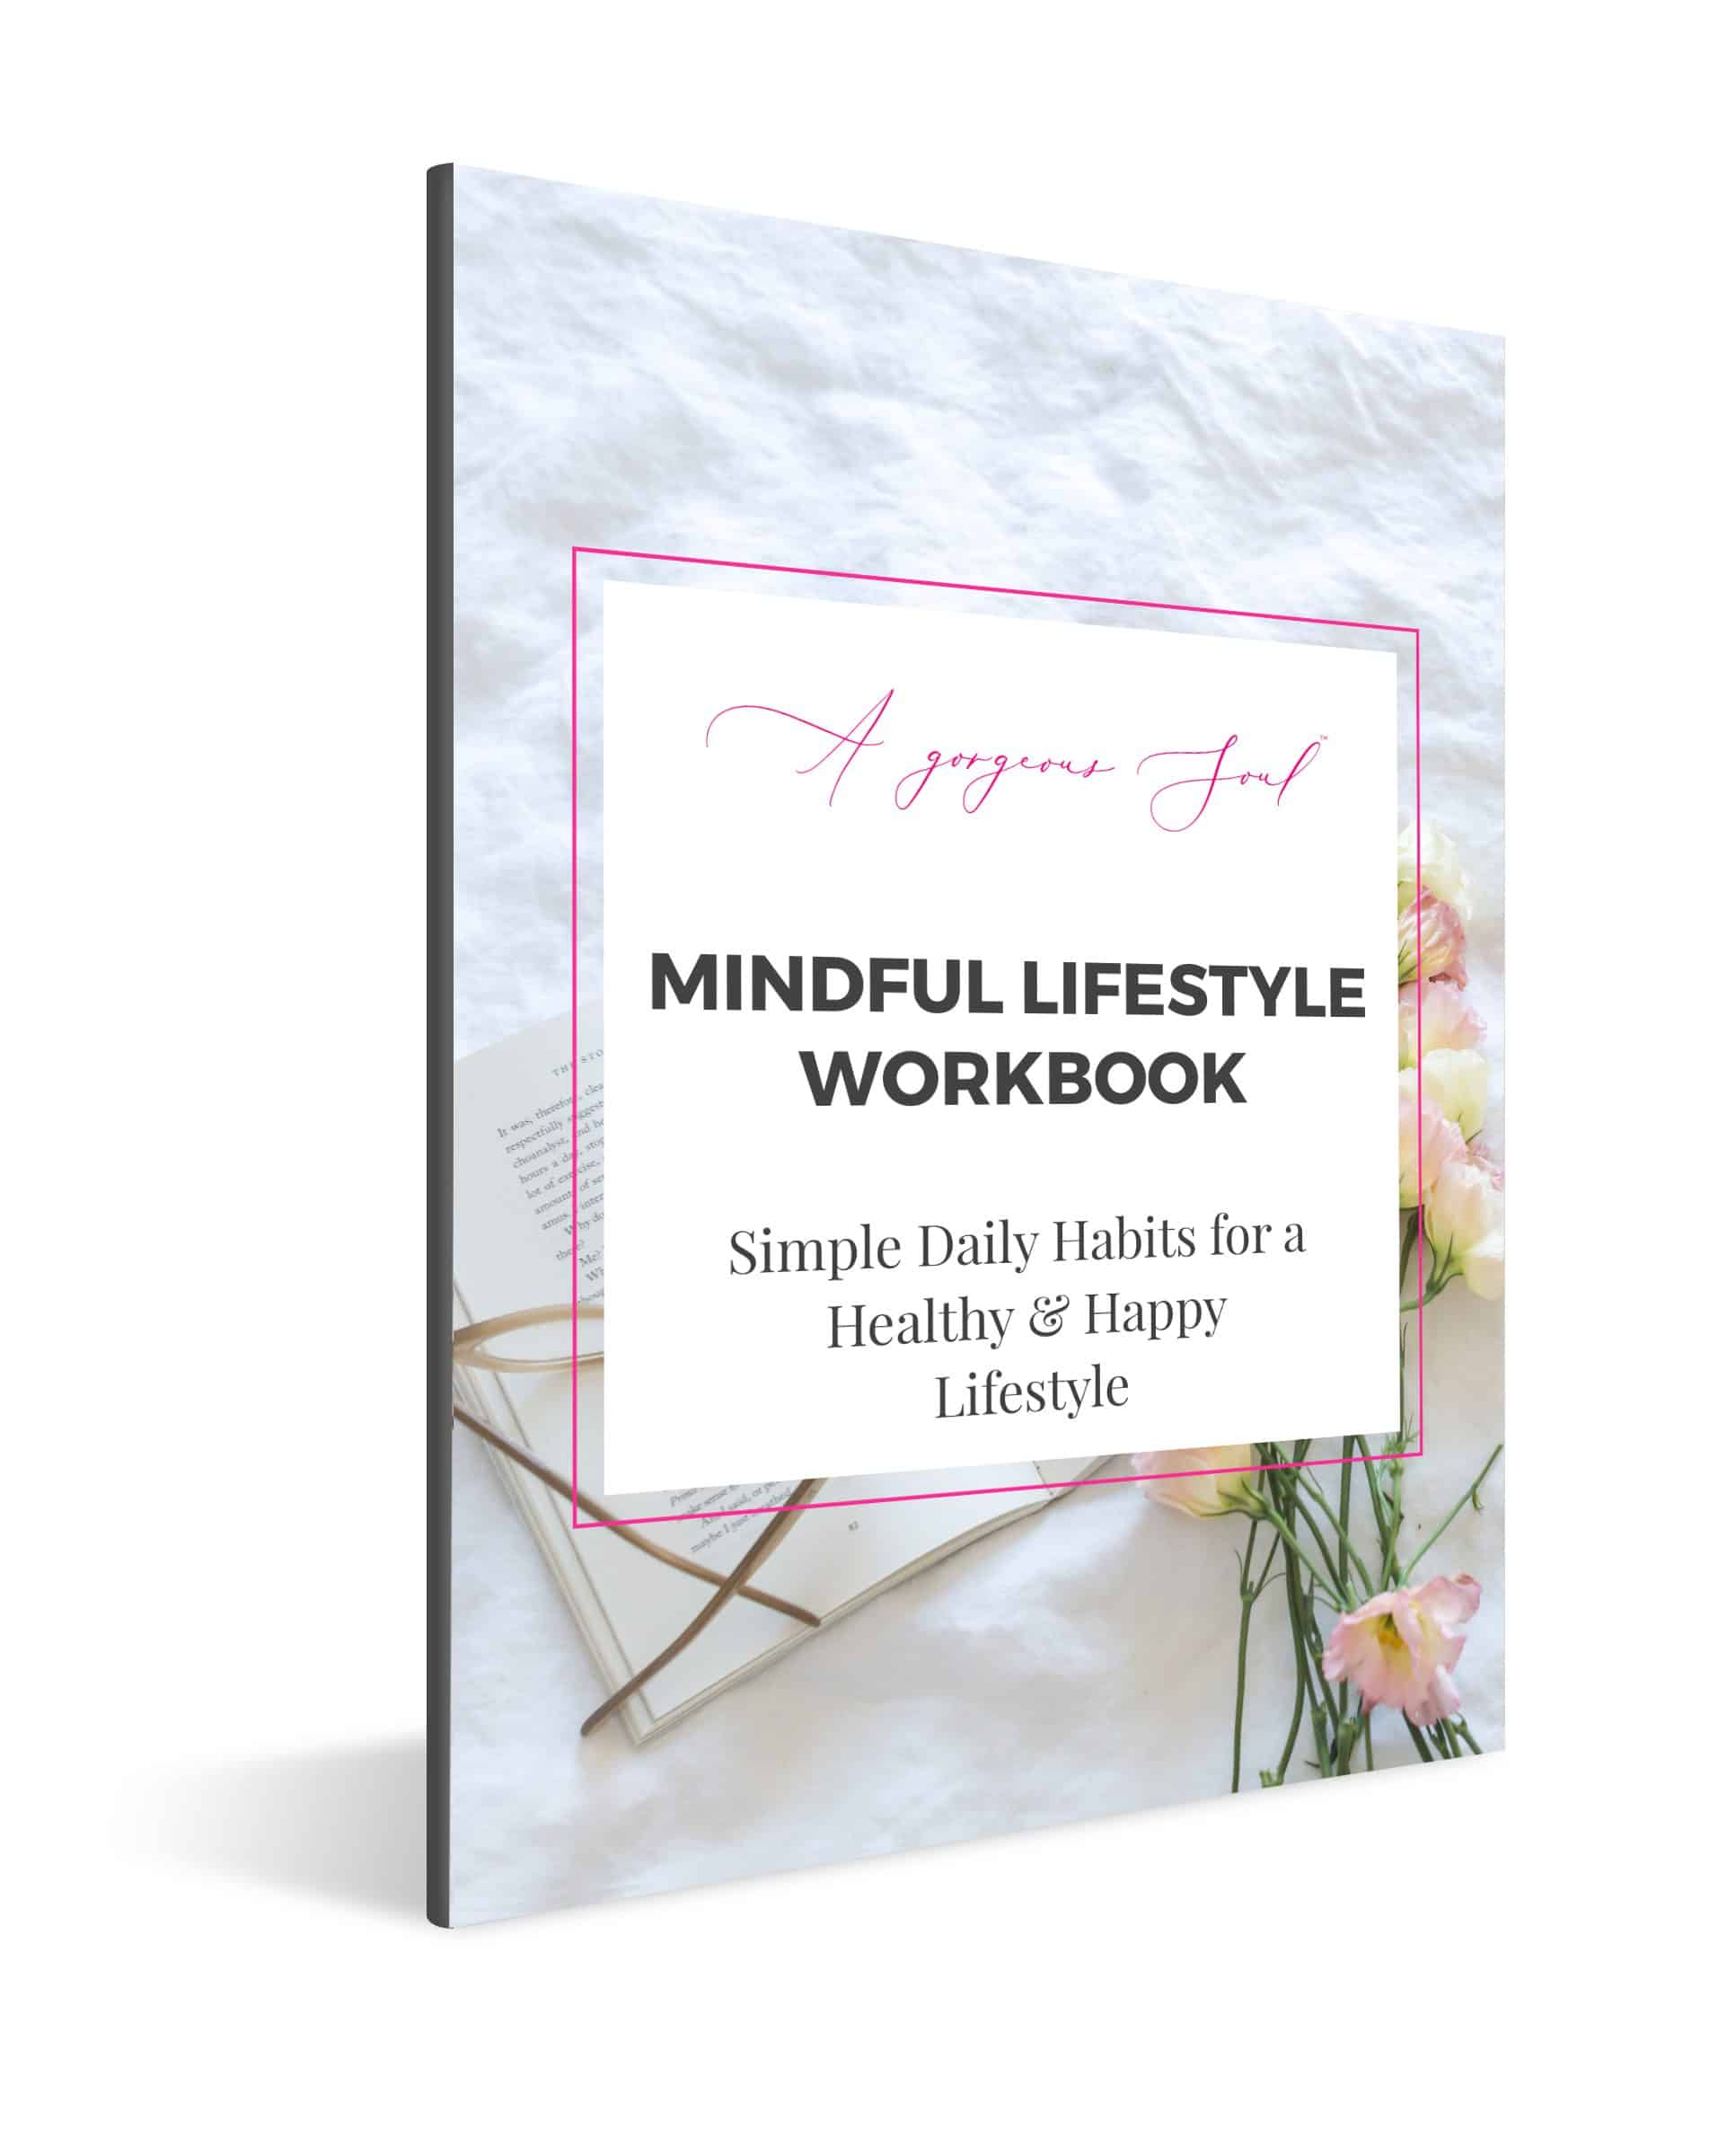 The Mindful Lifestyle Workbook